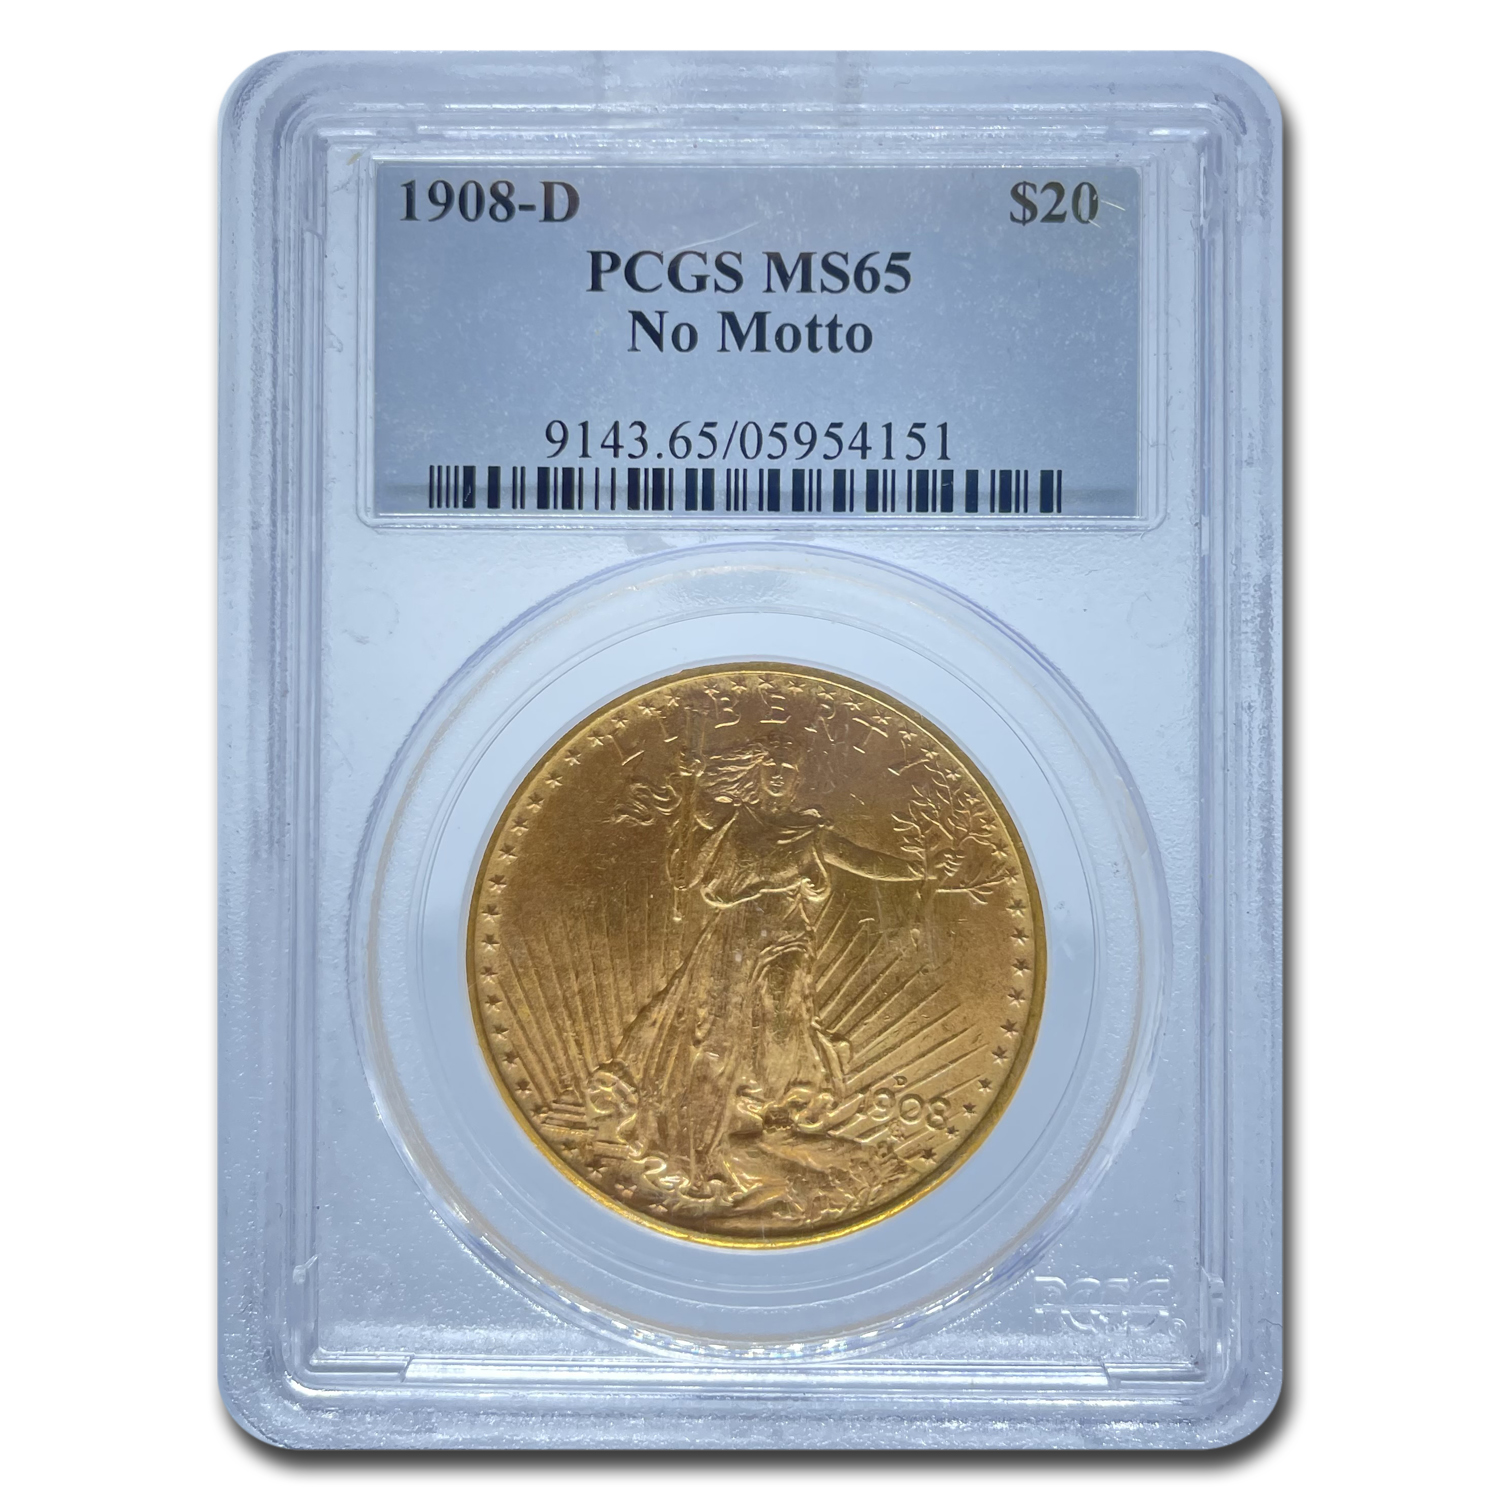 1908-D $20 Saint-Gaudens Gold No Motto MS-65 PCGS